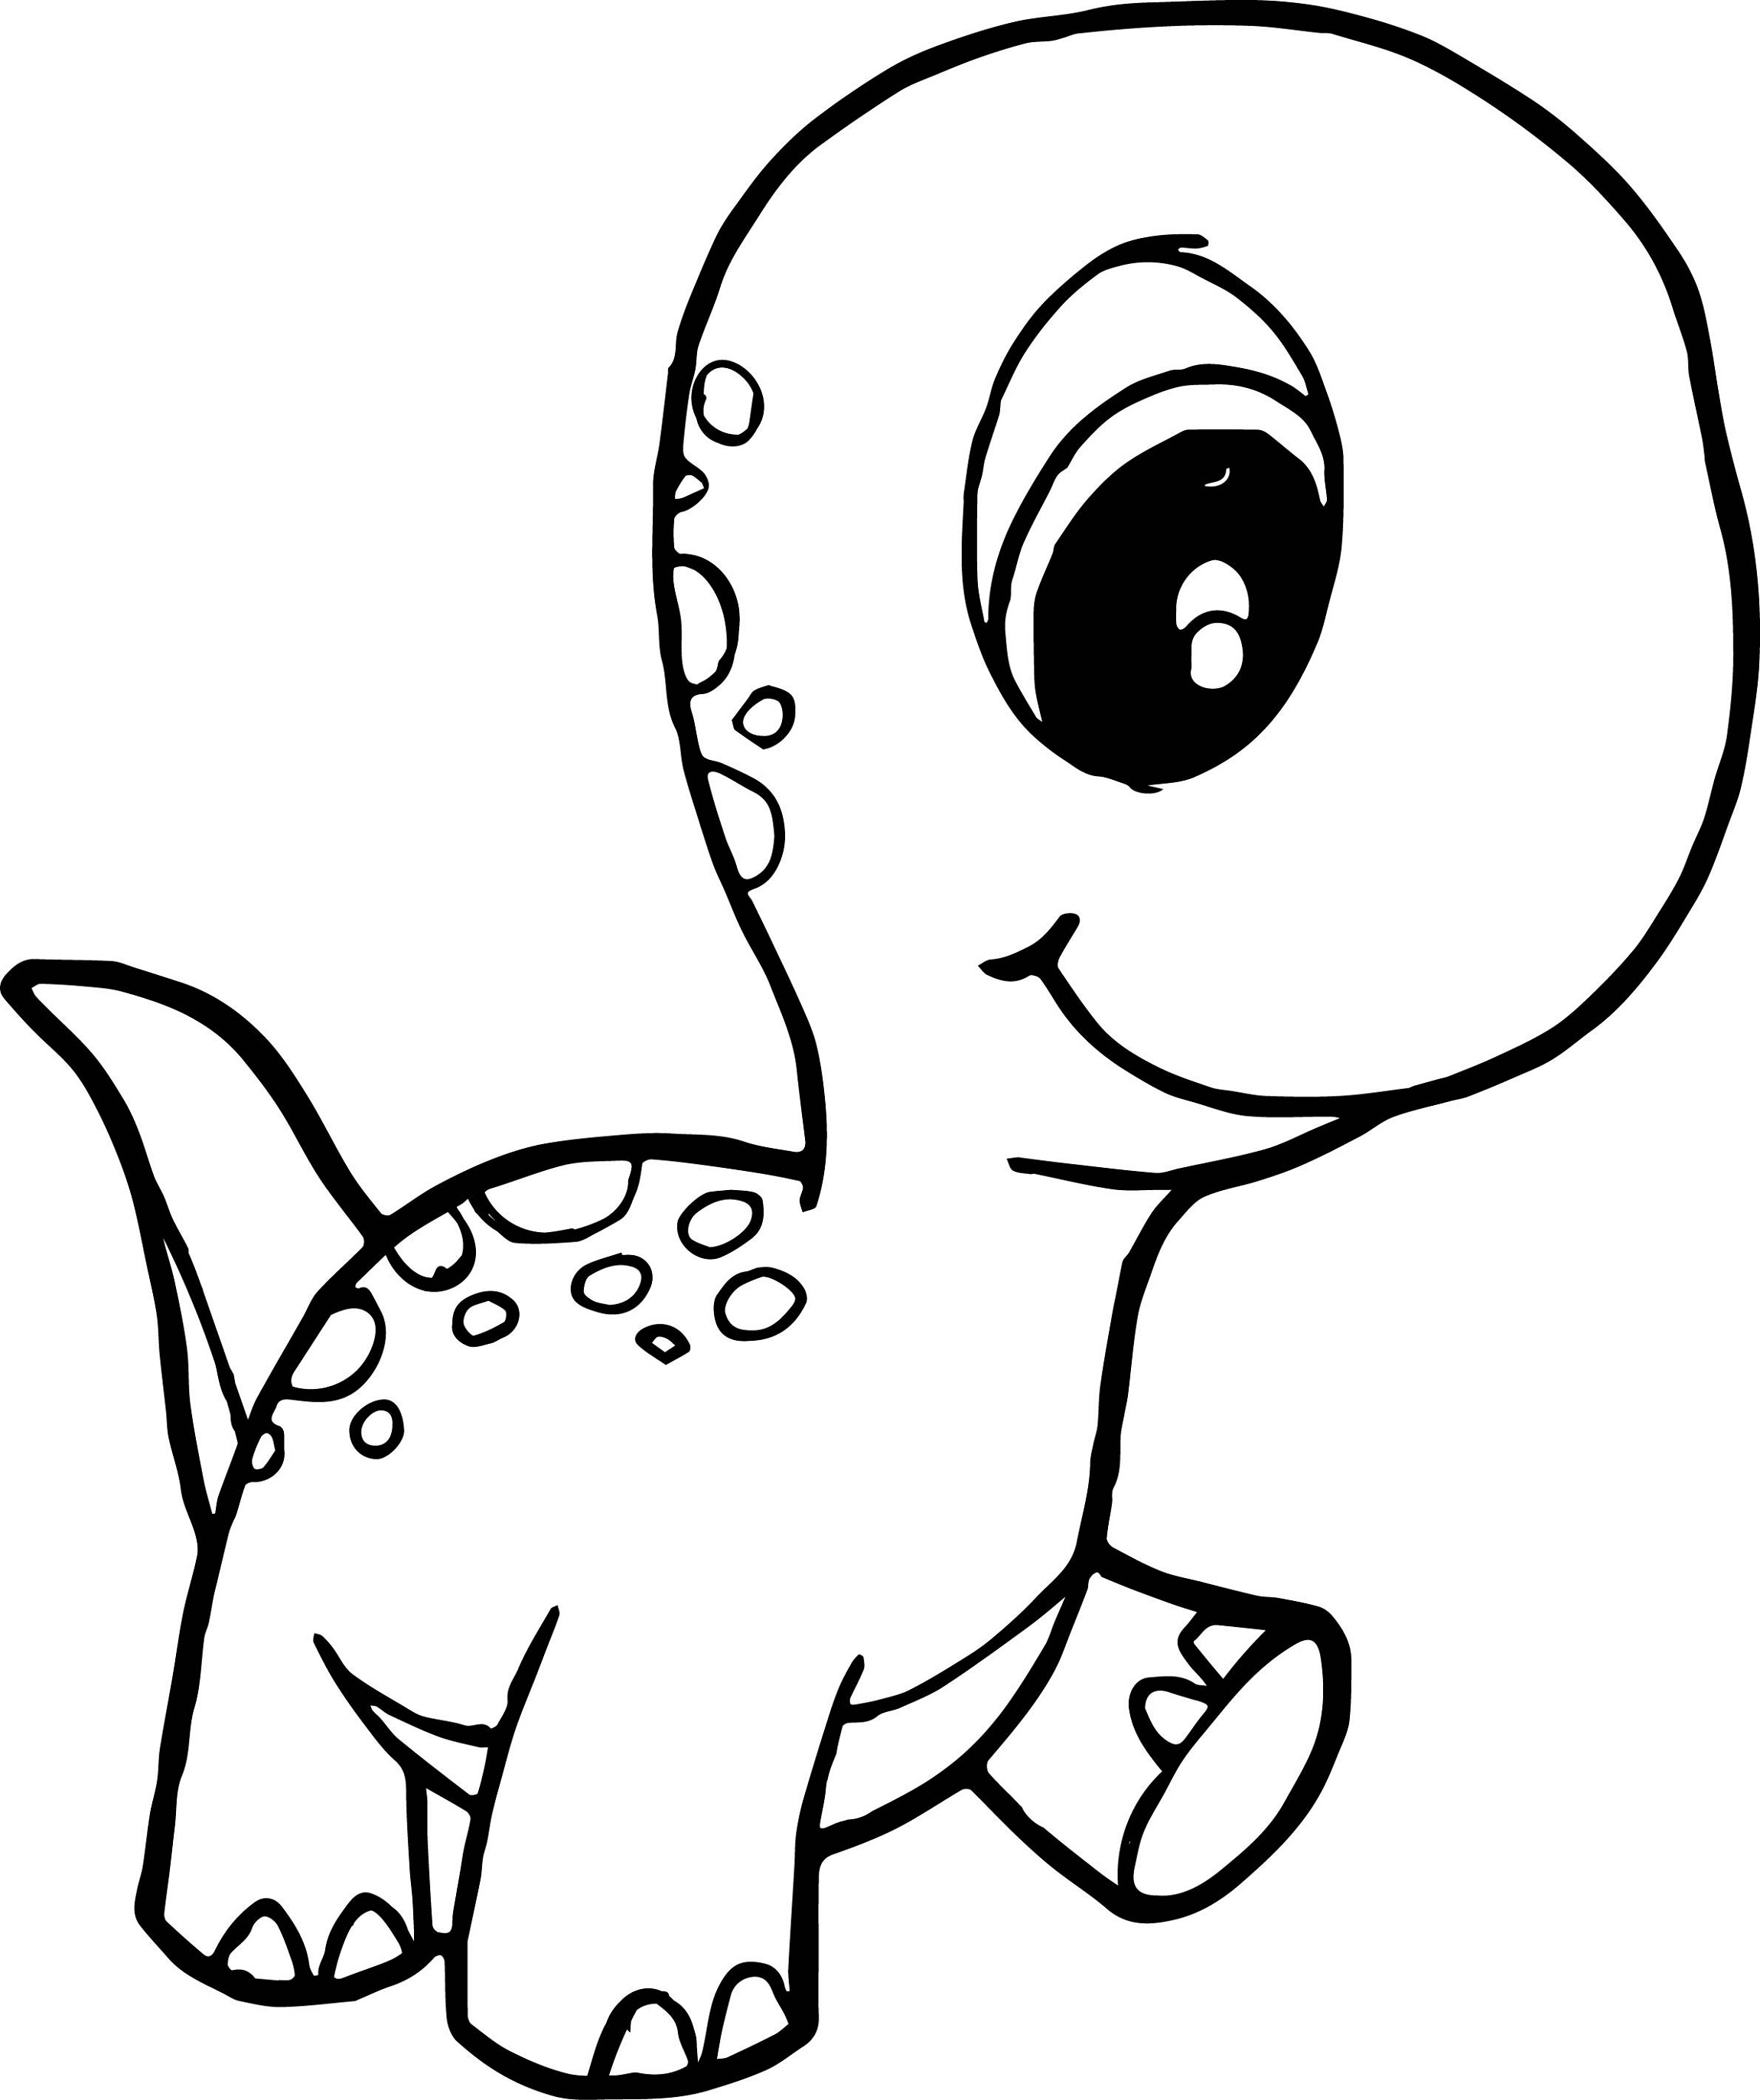 dinosaur coloring image dinosaur coloring pages to download and print for free dinosaur image coloring